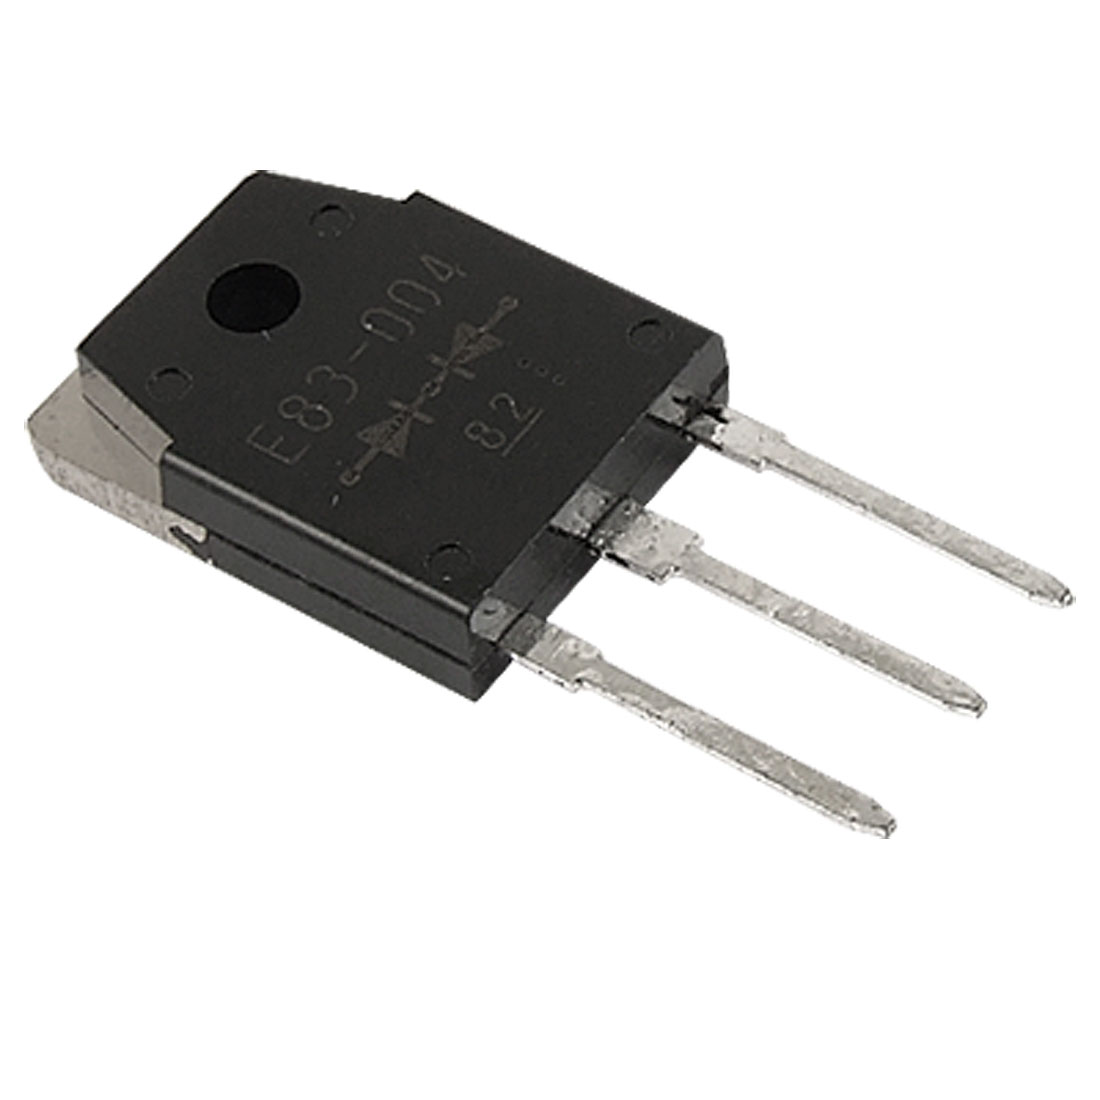 40V 60A 3 Terminals Mounting Hole Schottky Barrier Diode E83-004